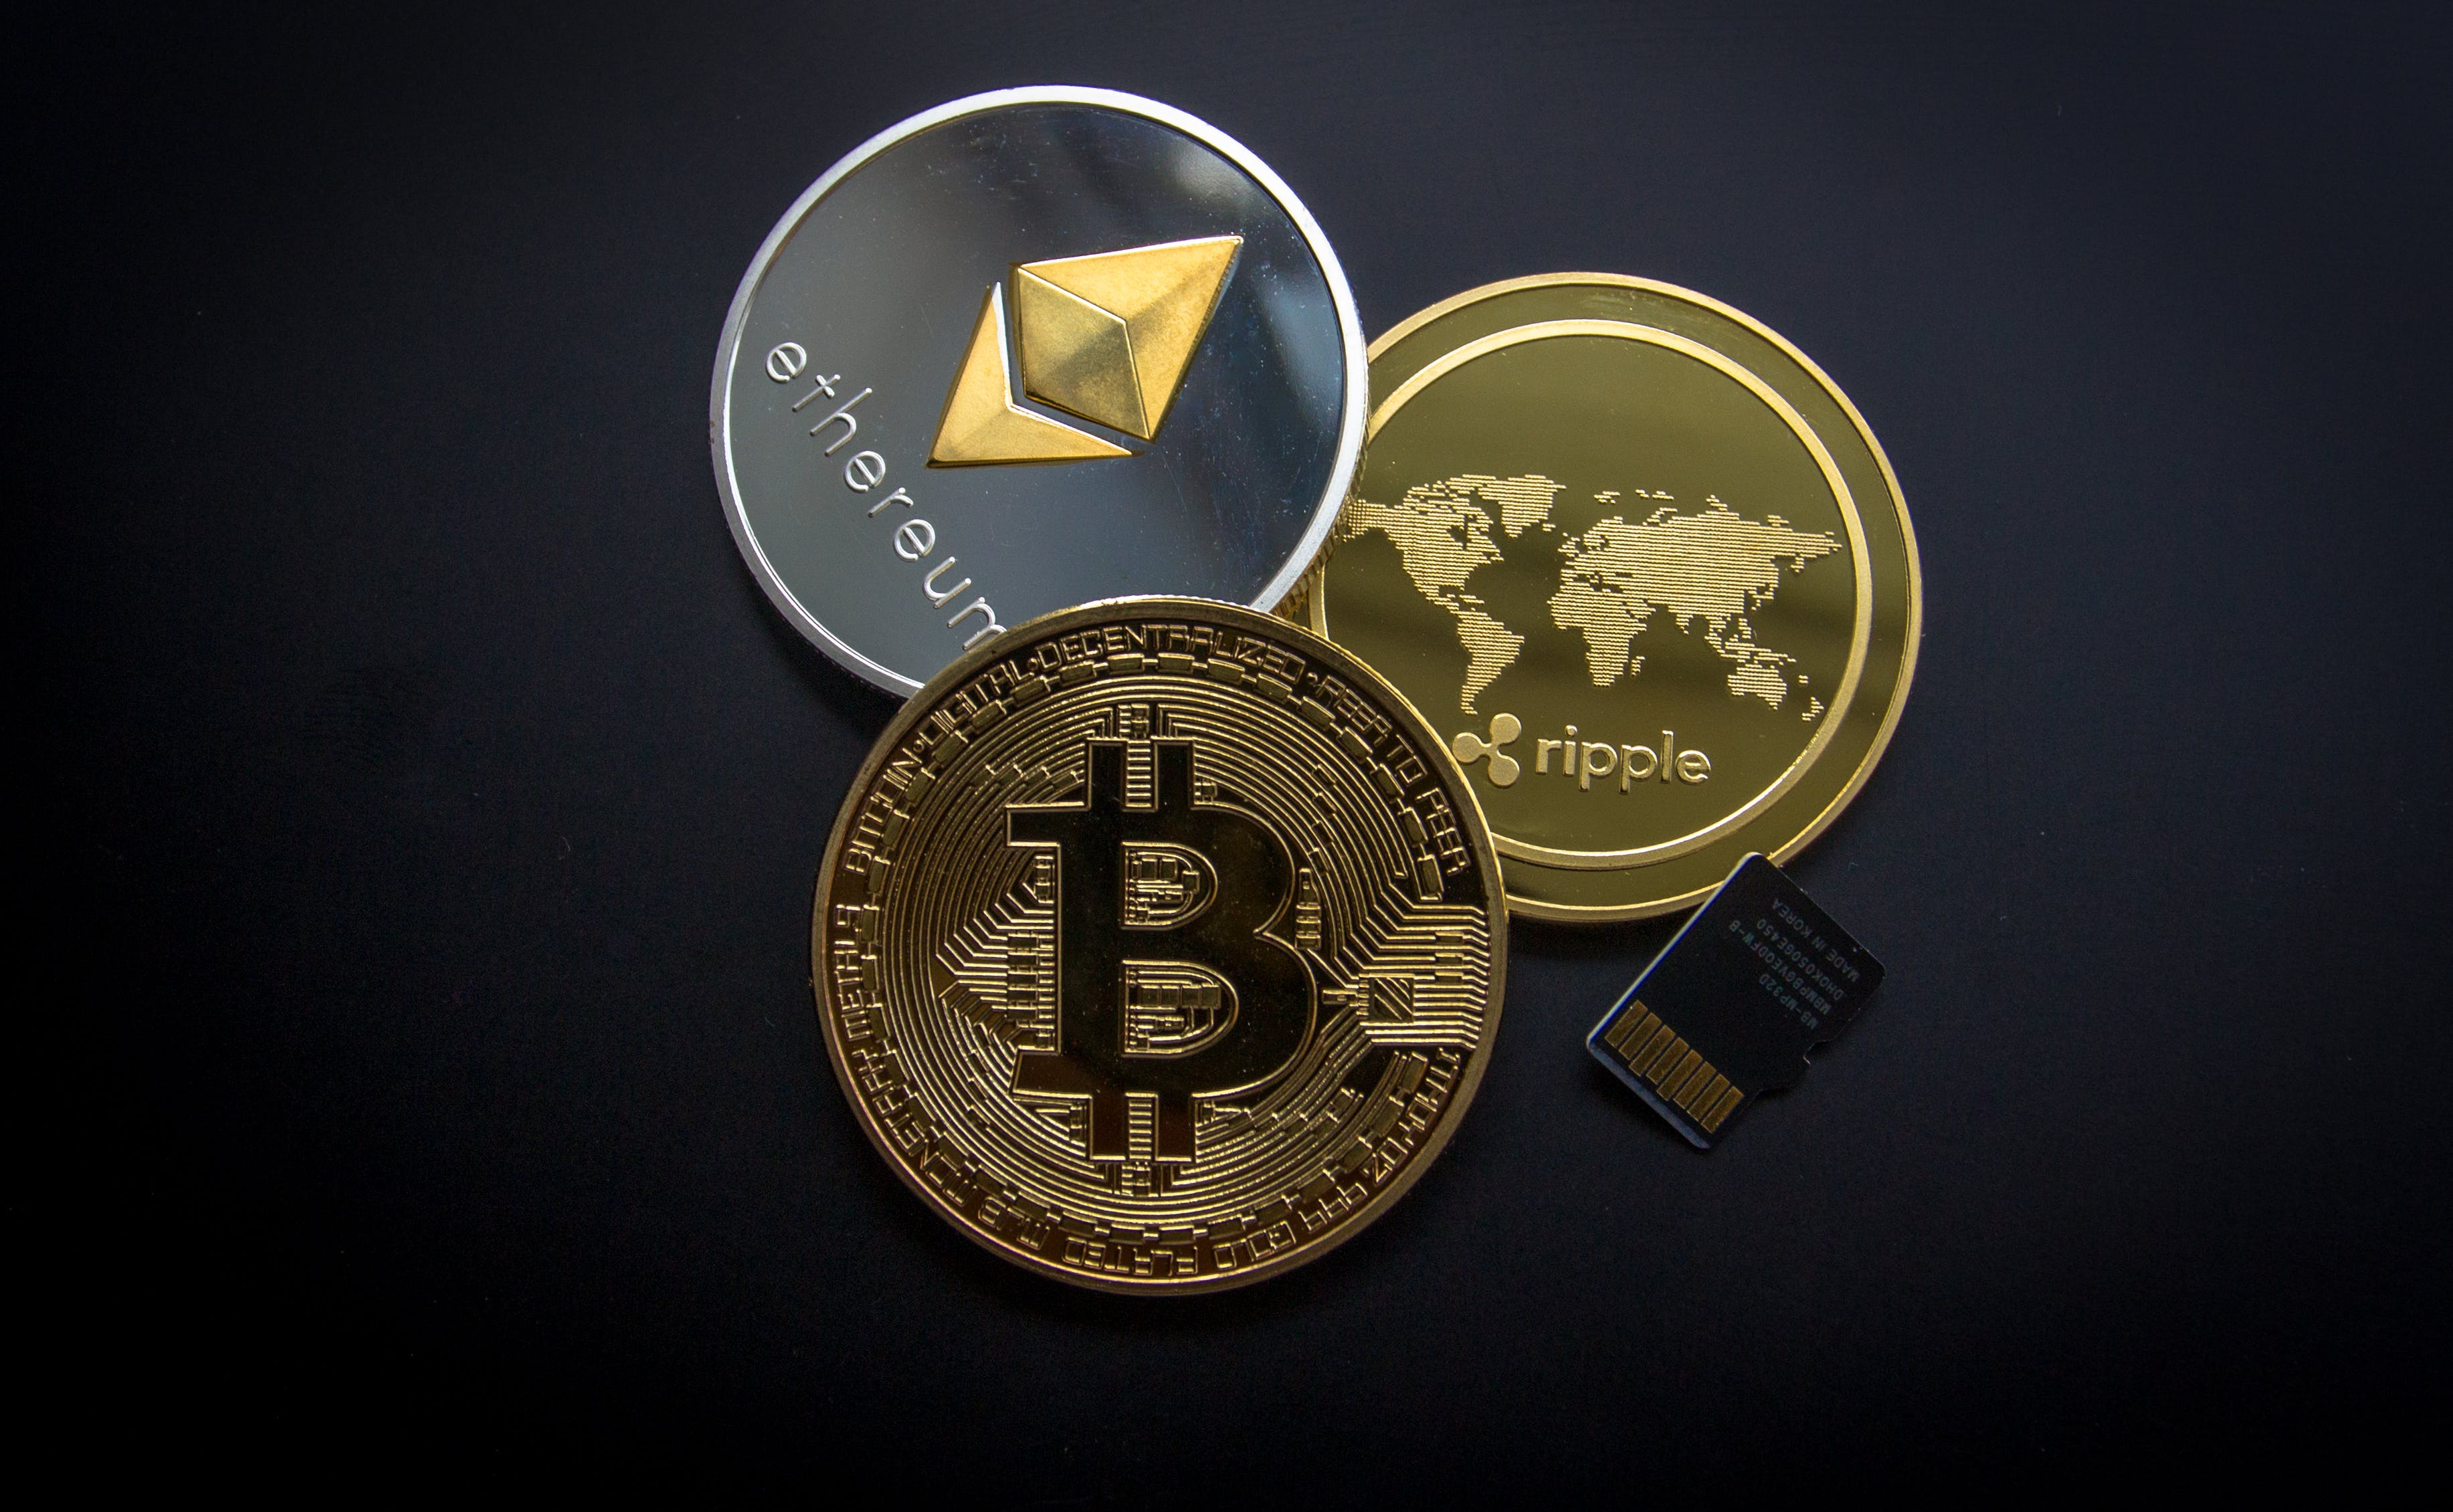 Ripple, Etehereum and Bitcoin and Micro Sdhc Card